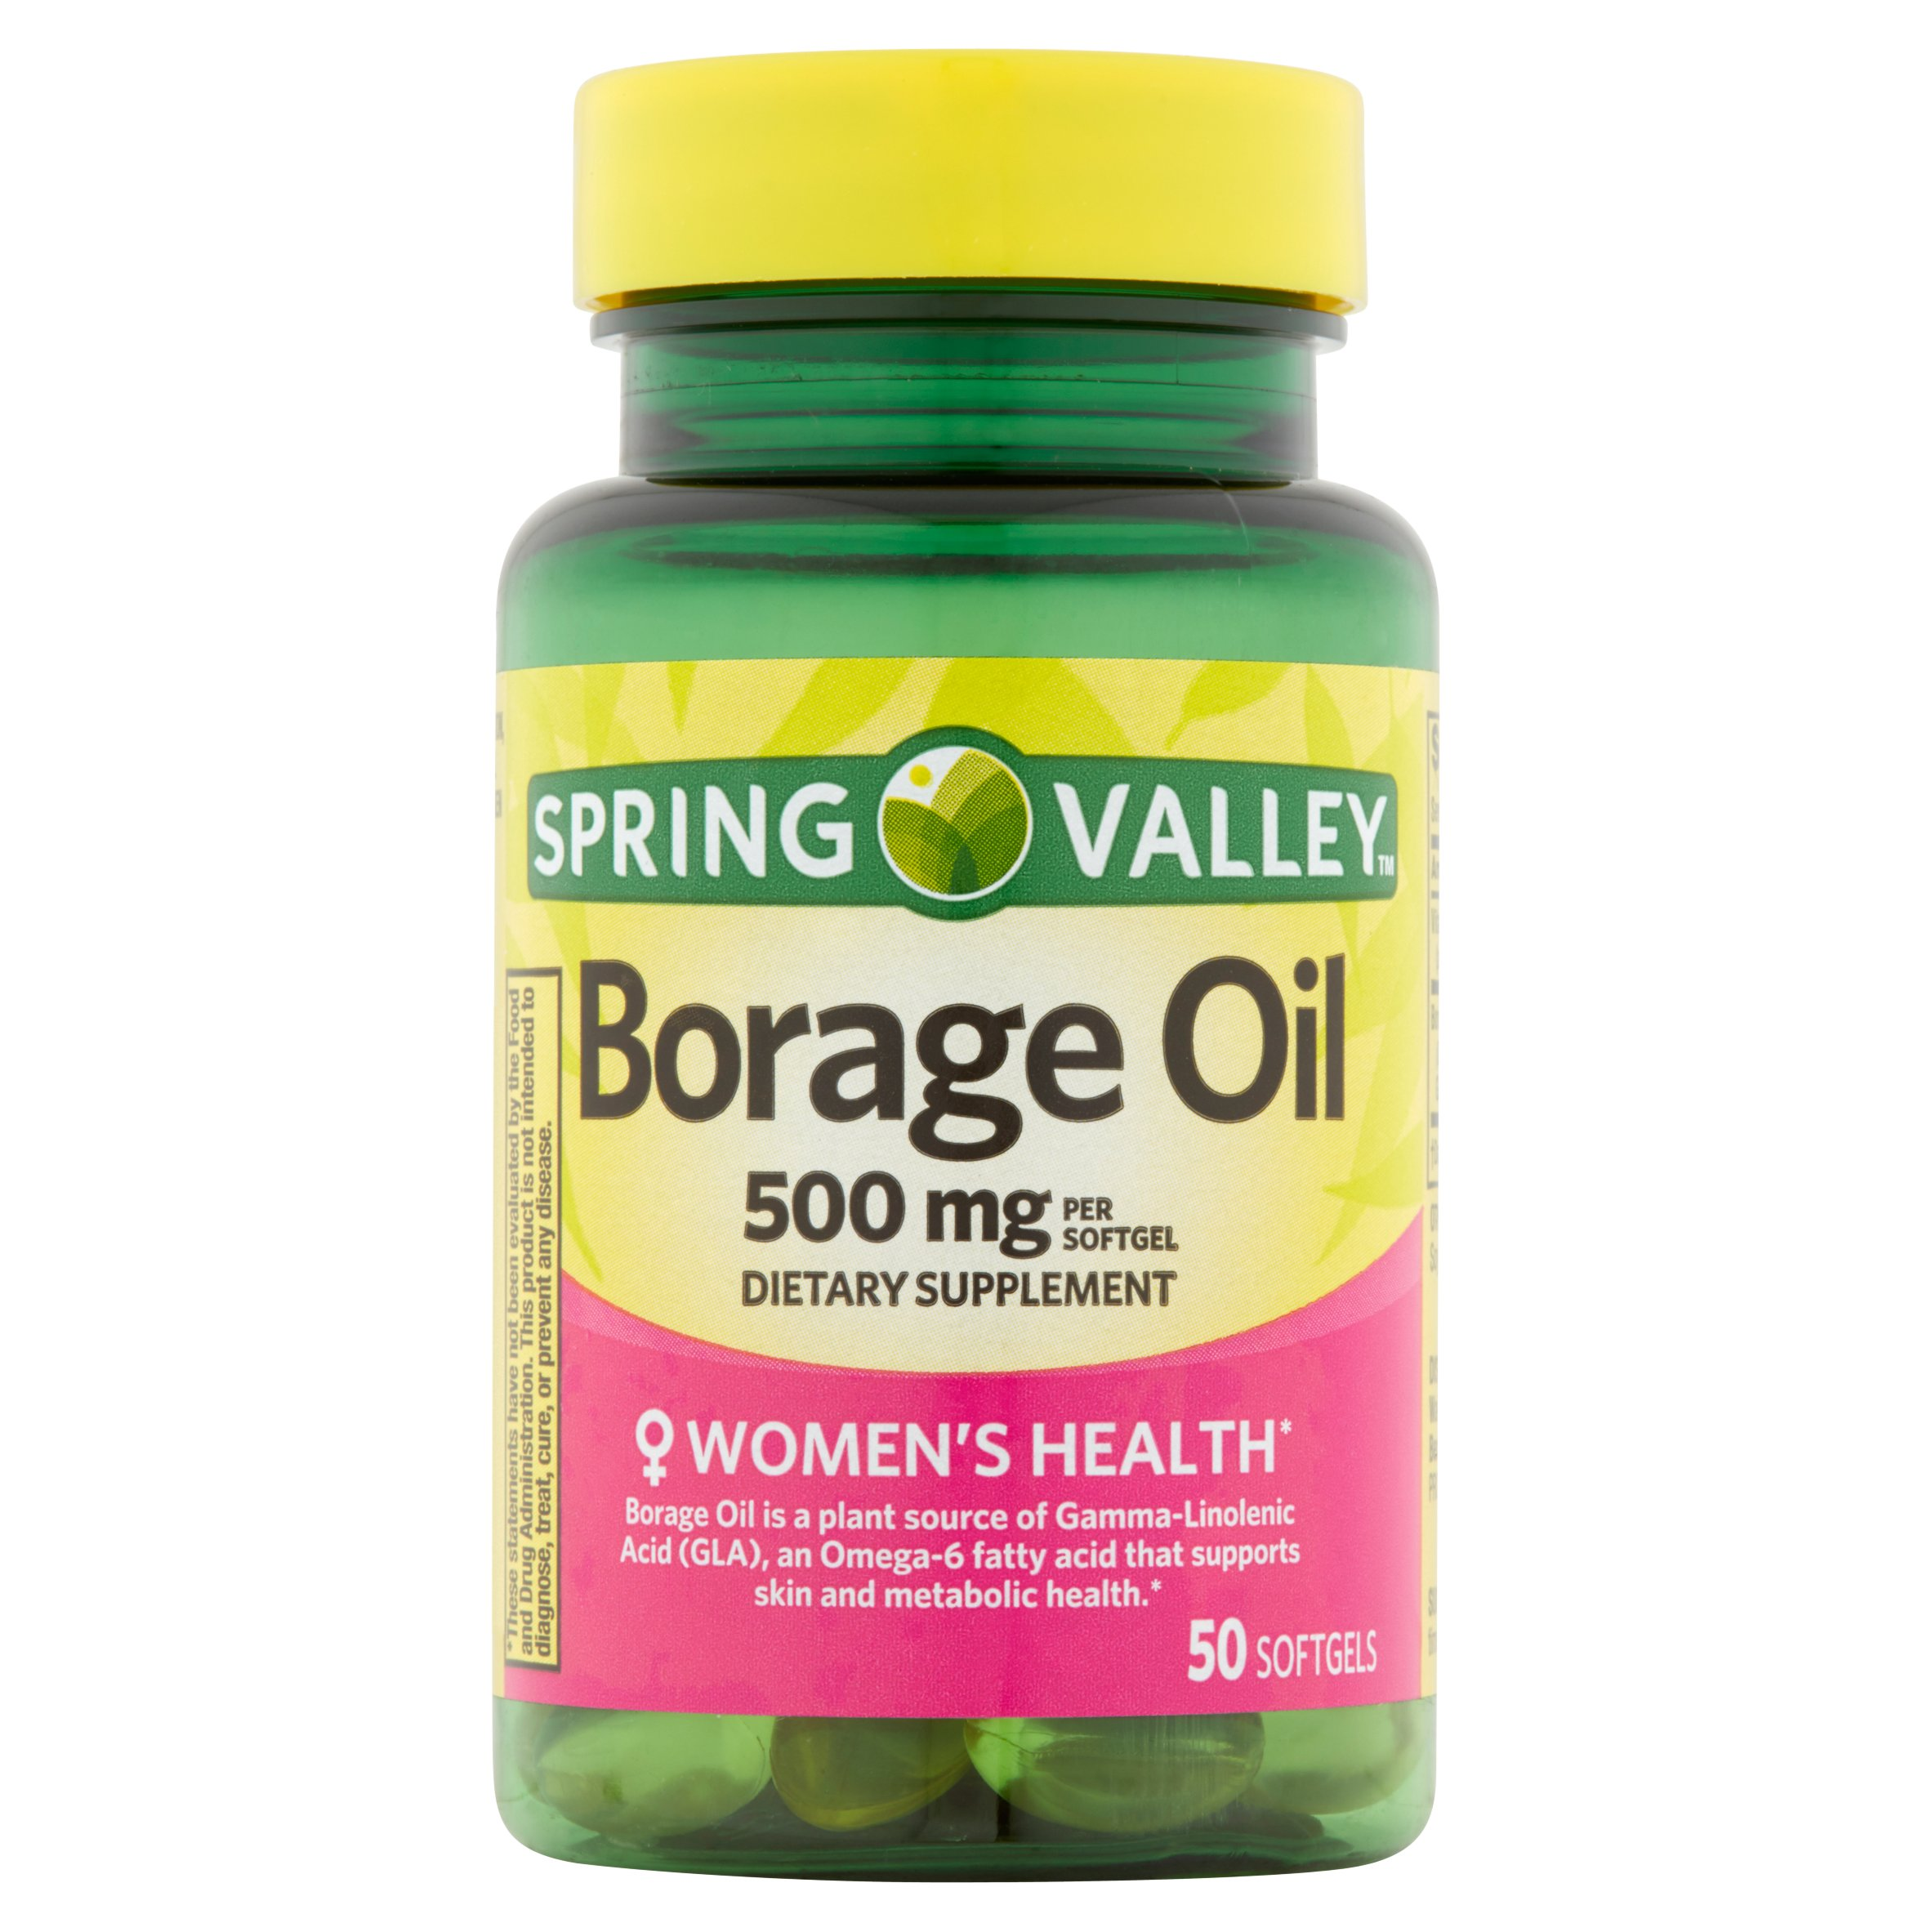 spring valley women's health* borage oil 500 mg per softgel, 50 ct, Skeleton